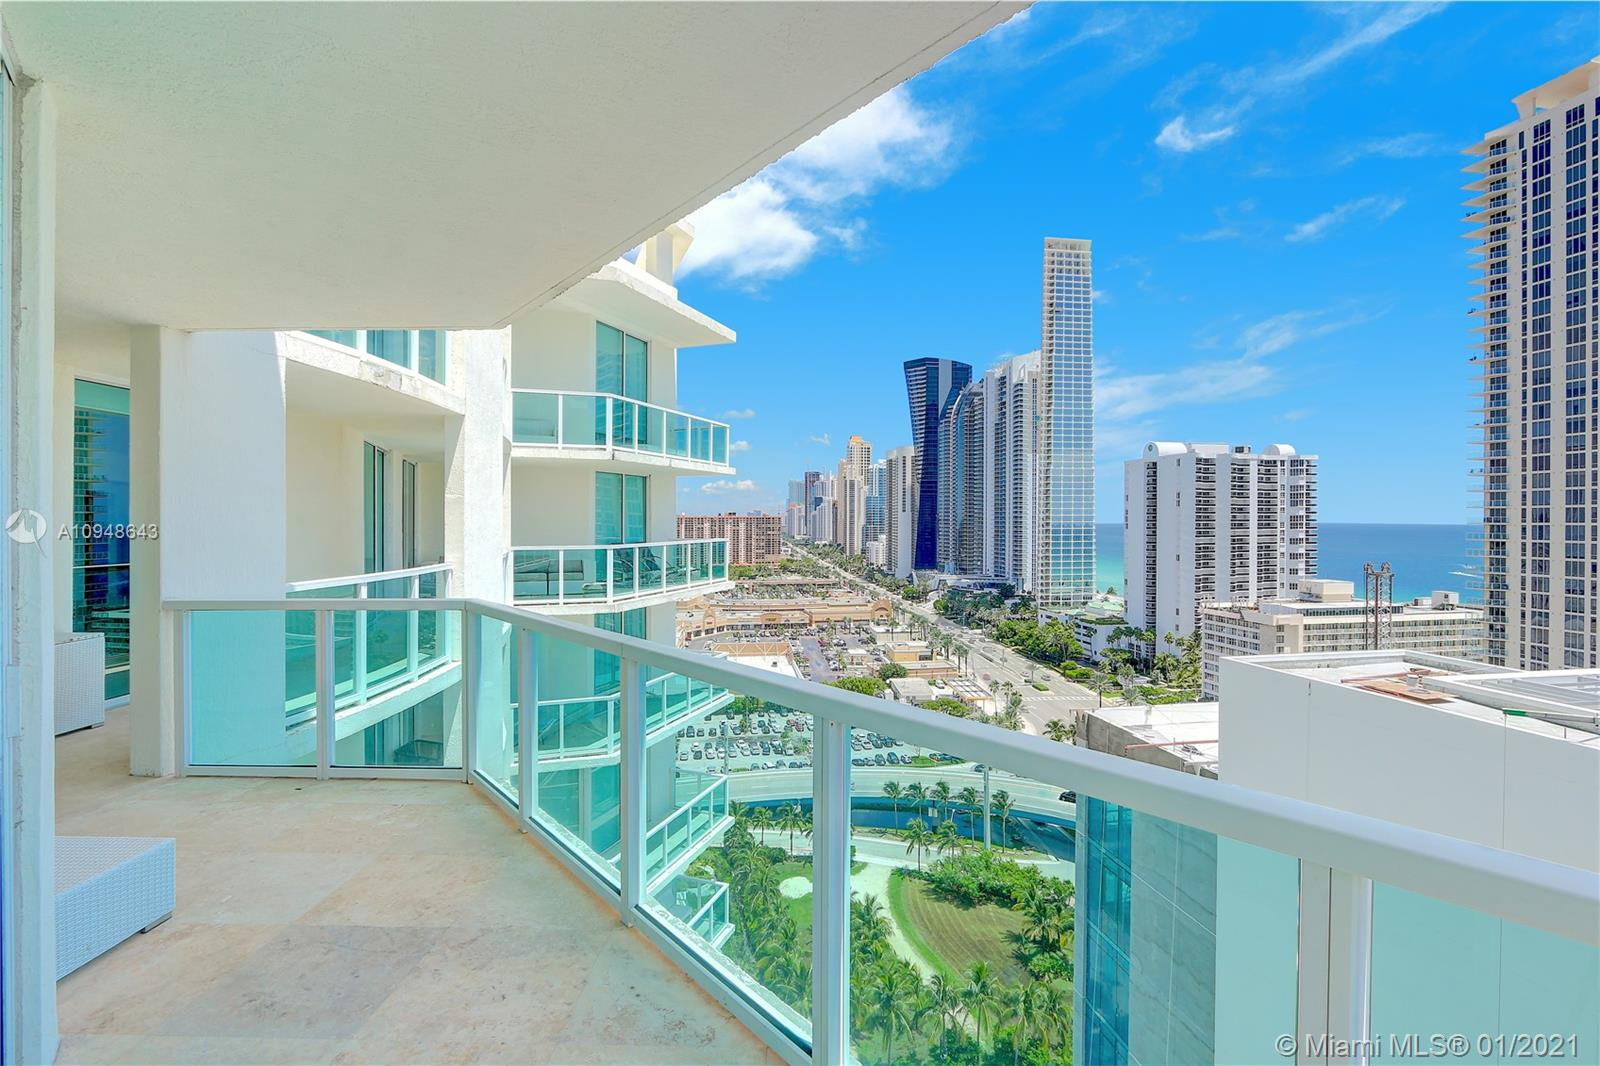 Spectacular contemporary 4BR 4.5BA upper corner Penthouse unit with an additional 1,100 Sq Ft 1BR 1BA private cabana by pool area in the exclusive St. Tropez Residences in Sunny Isles Beach. The amazing ocean and skyline views will hypnotize the most fastidious of them all. High impact windows and doors separate the apt. with the huge semi wrap around balcony. Beautiful marble floors and fine European kitchen & finishes. Sub Zero and Euro appliances. First class amenities include pool, gym and business center, door man Security and concierge. 2 private parking spots. Walking distance to the beach, shopping and restaurants in the area. Mins from Bal Harbour Shops and Aventura Mall.